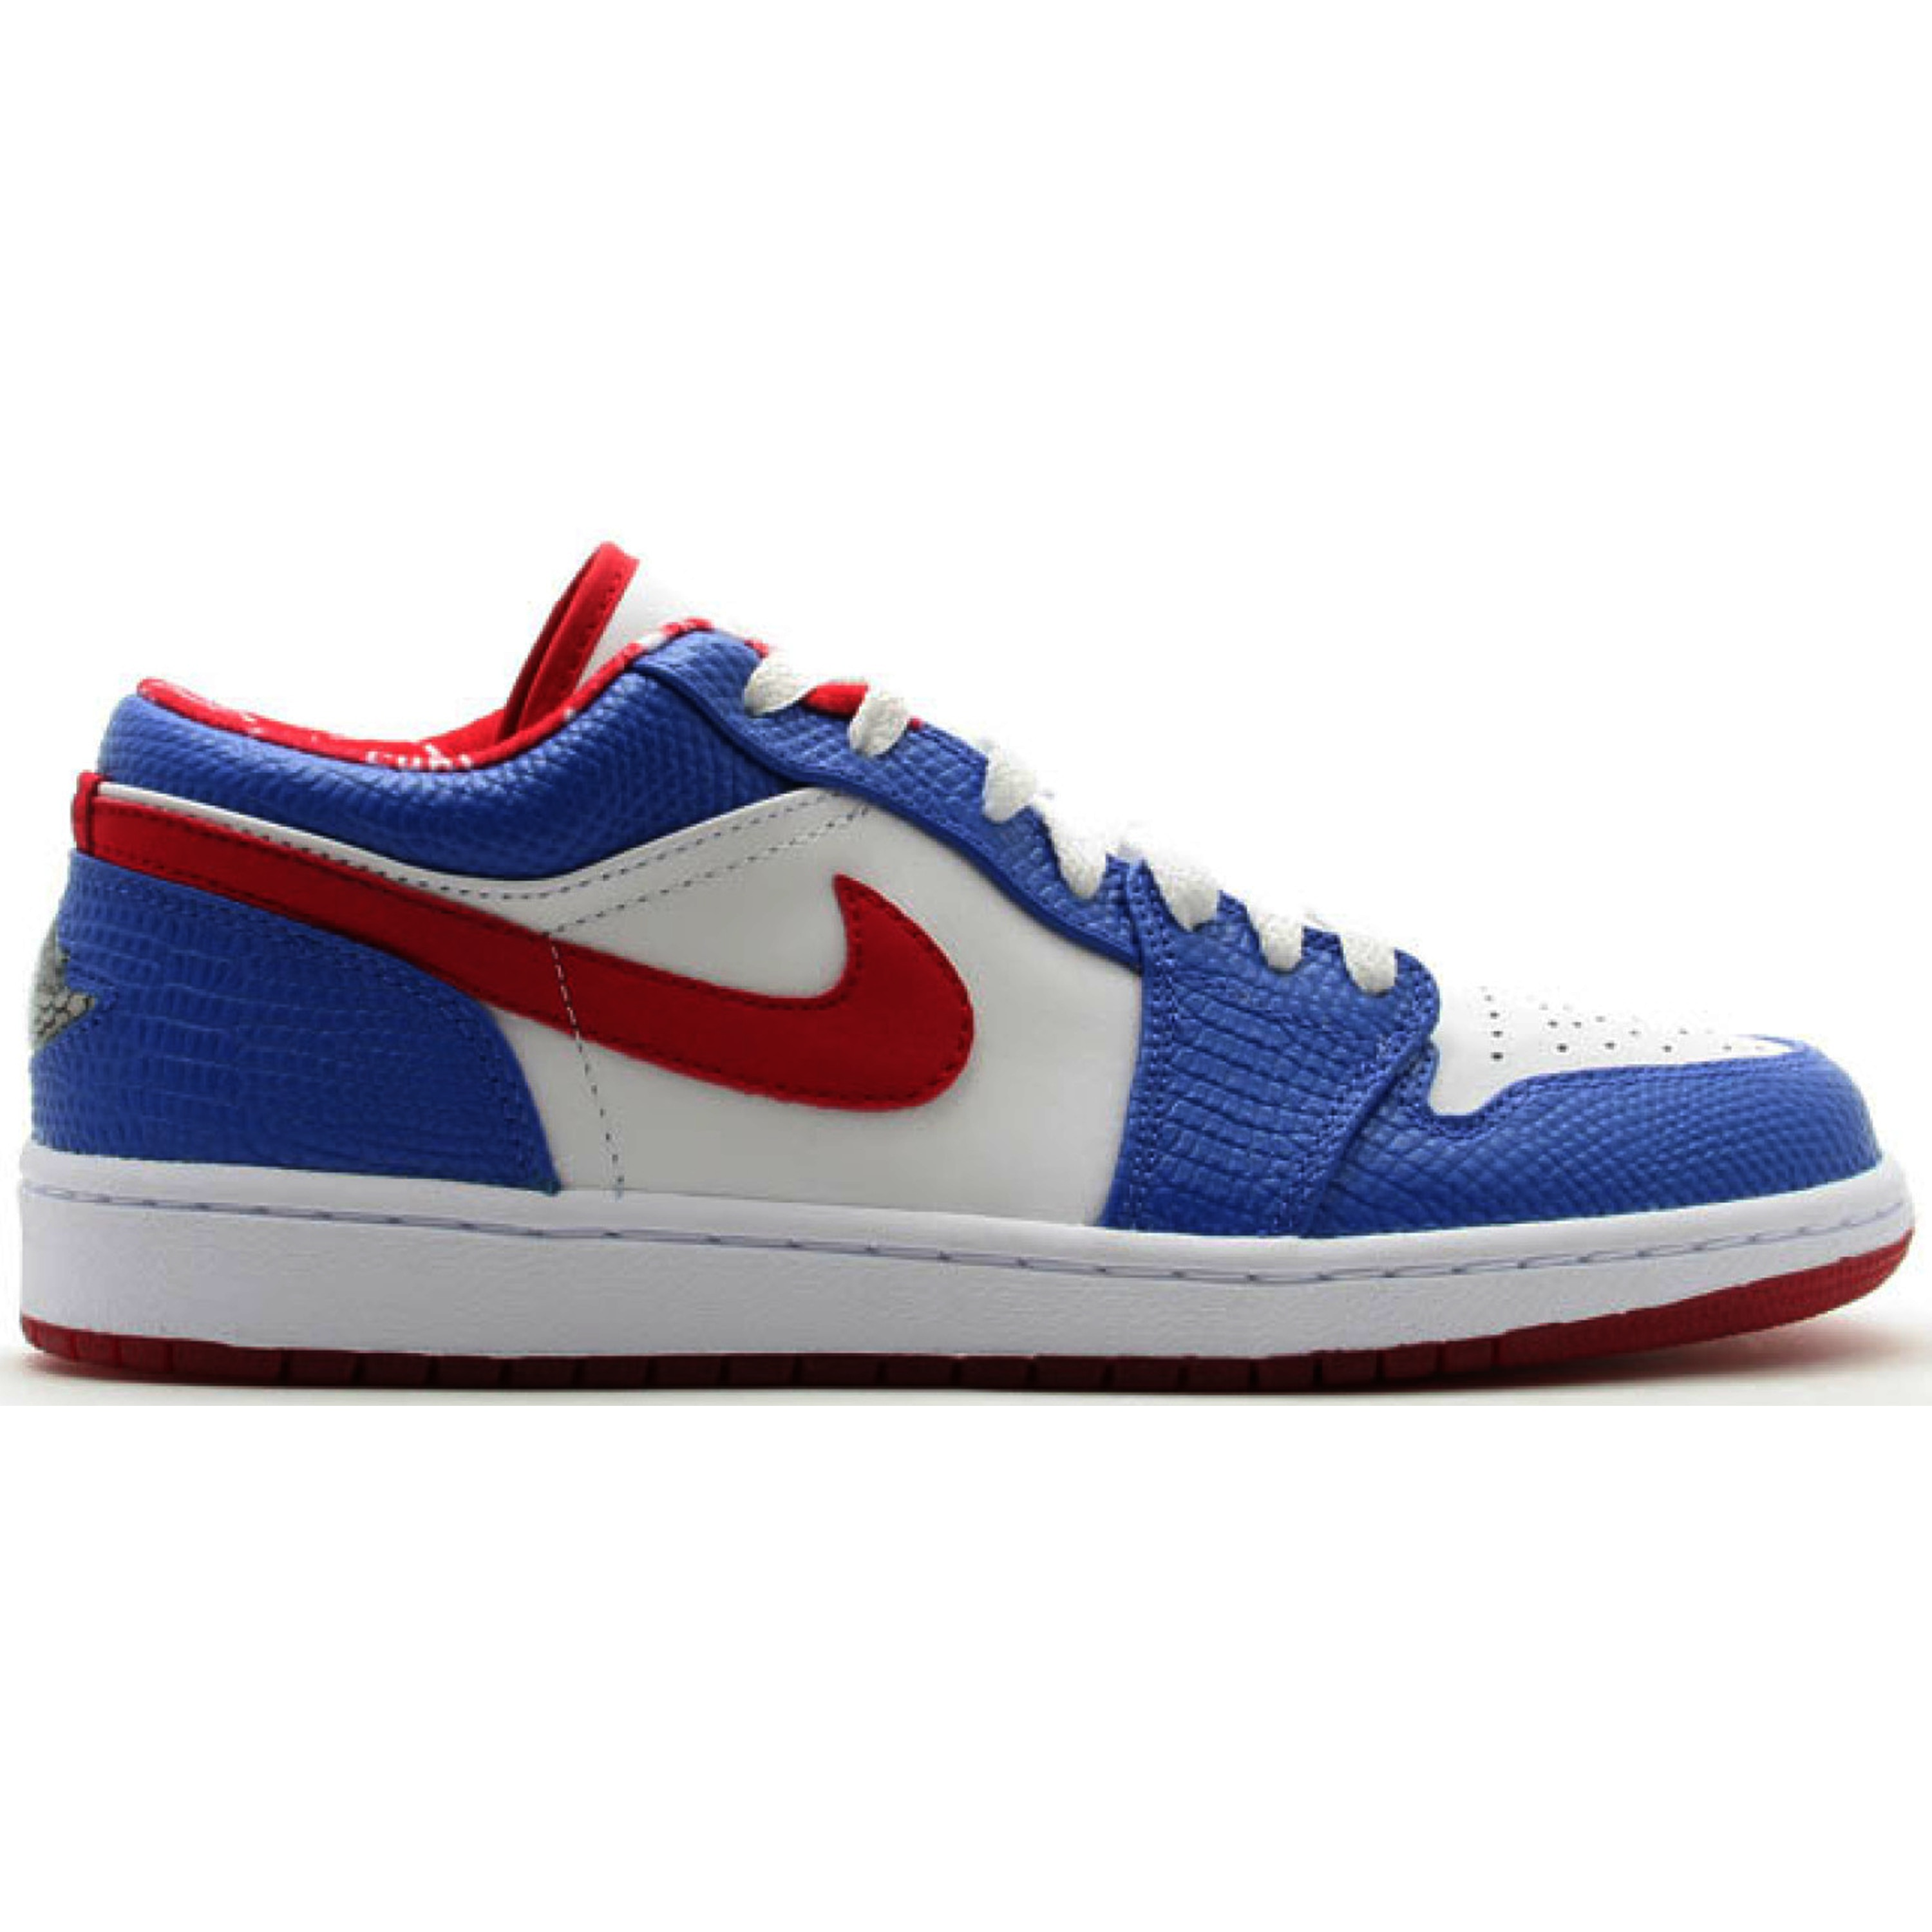 Jordan 1 Retro Low East Side (309192-161)